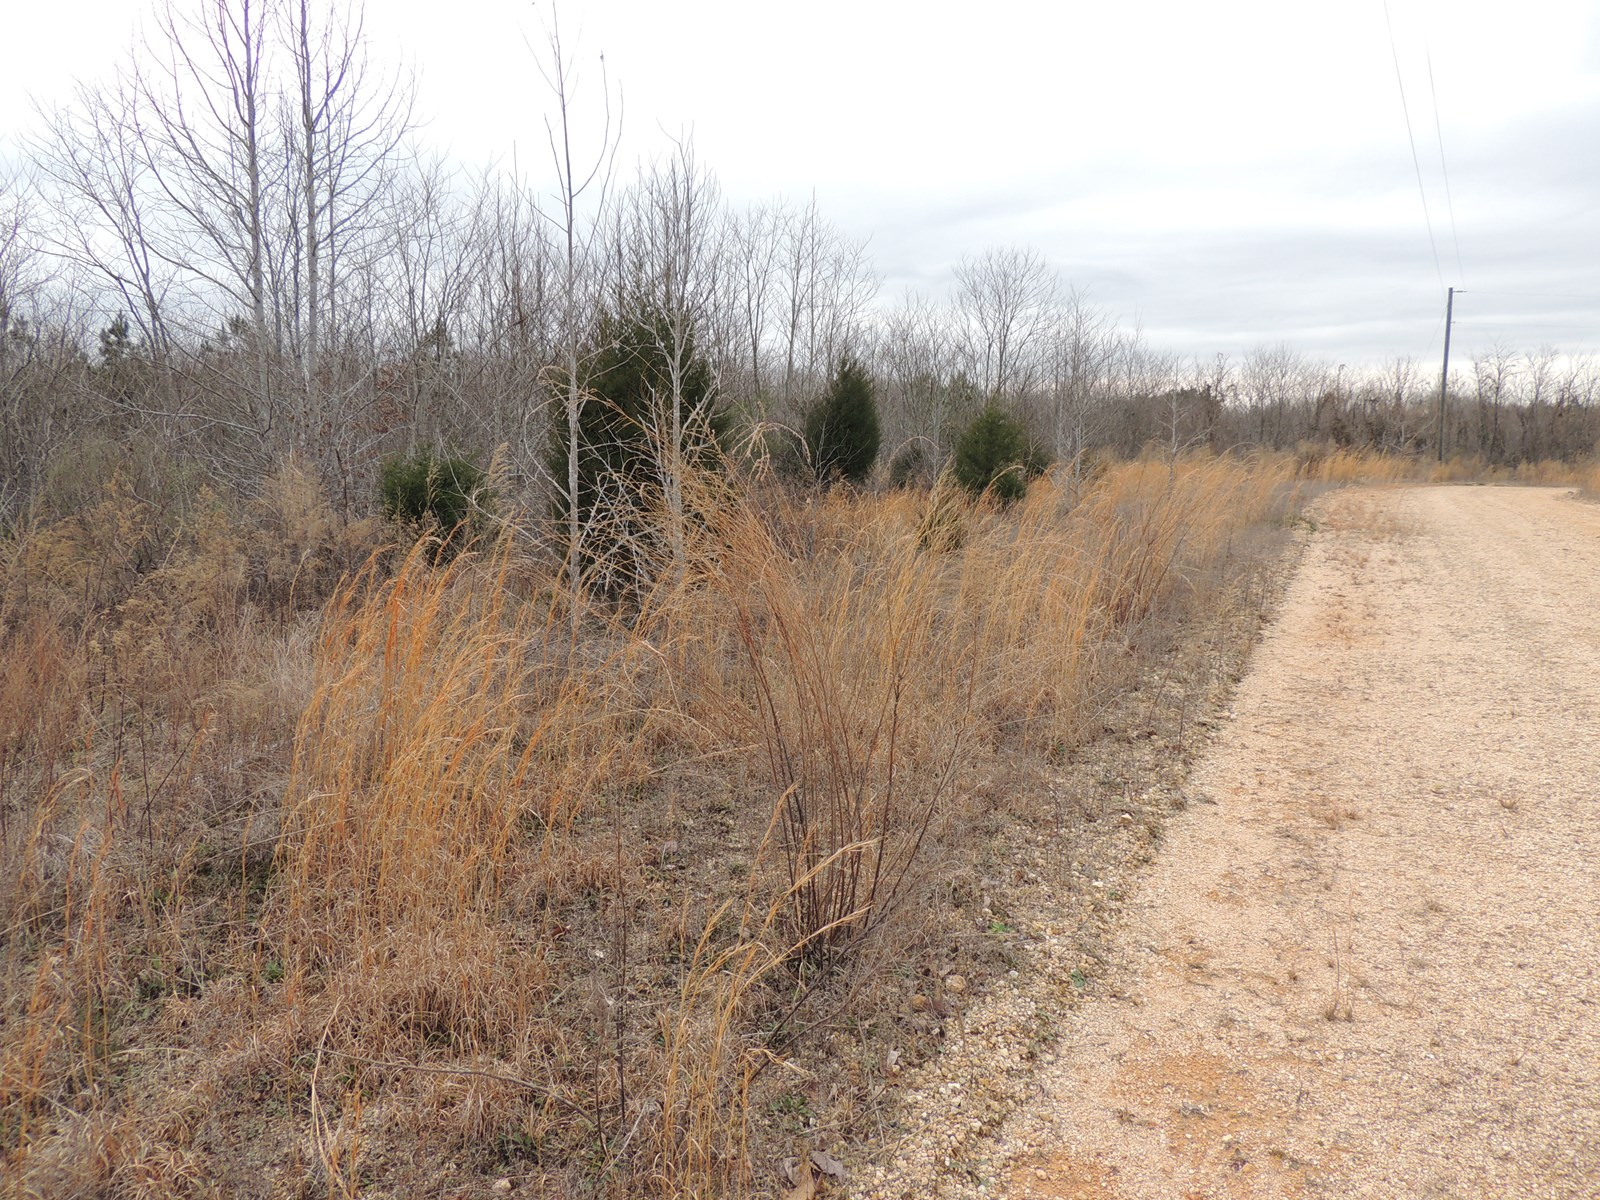 VACANT LAND FOR SALE IN TN, HUNTING LAND OR LAND TO BUILD ON